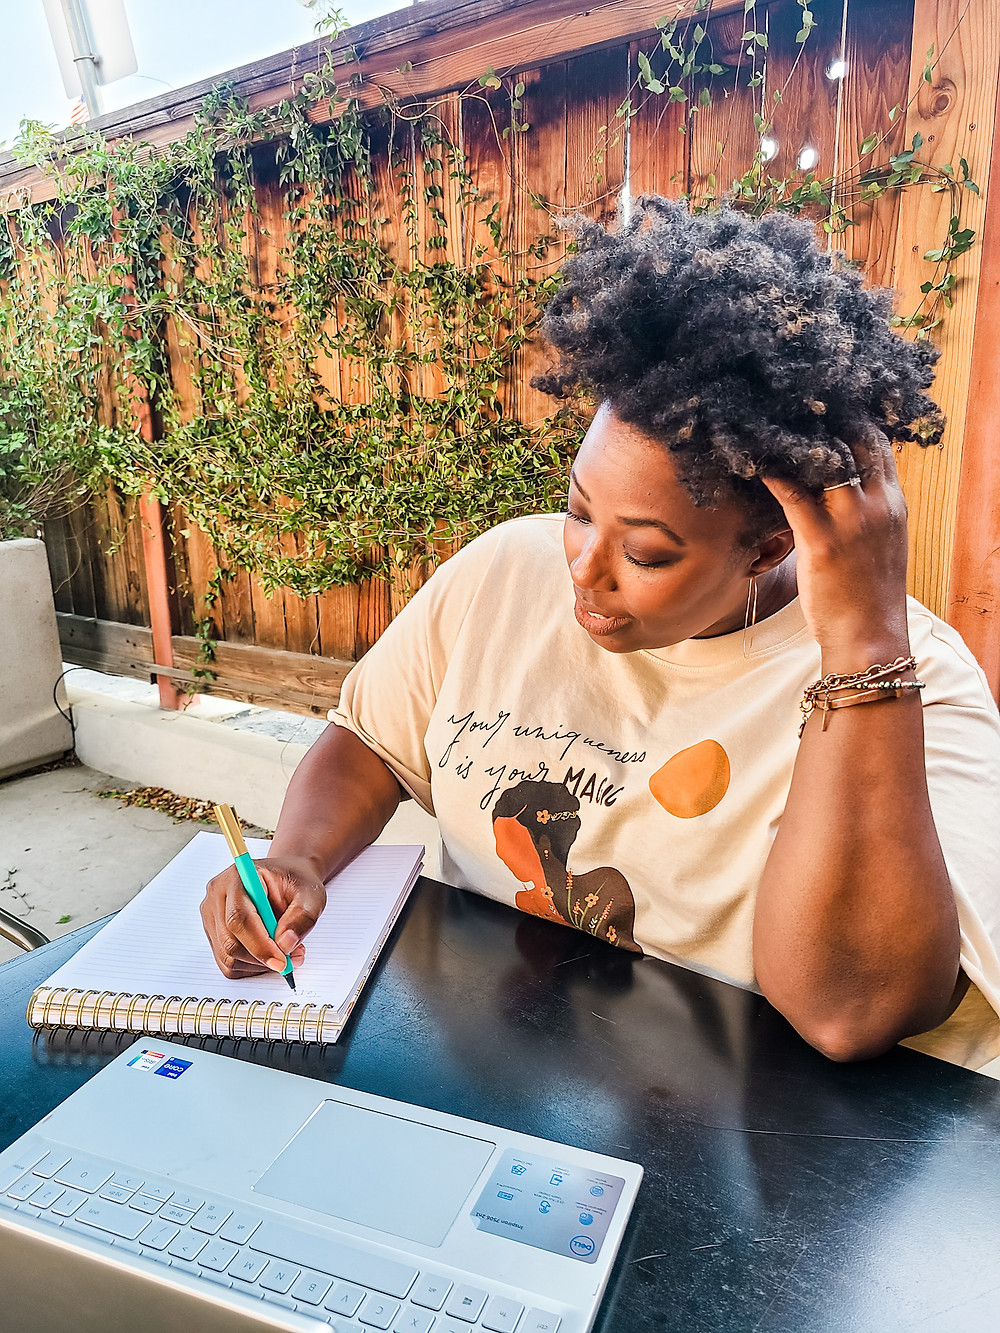 African American woman sitting outdoors at a table, writing on a spiral notebook with a teal colored pen in right hand, adn an open laptop in front. Left hand is bent up and fingers inside of her curly tapered haircut. Ivory colored shirt with an African American woman on the front, and illegible black writing. Wooden fence with green vines behind her. Shanell Tyus. Black Blogger.